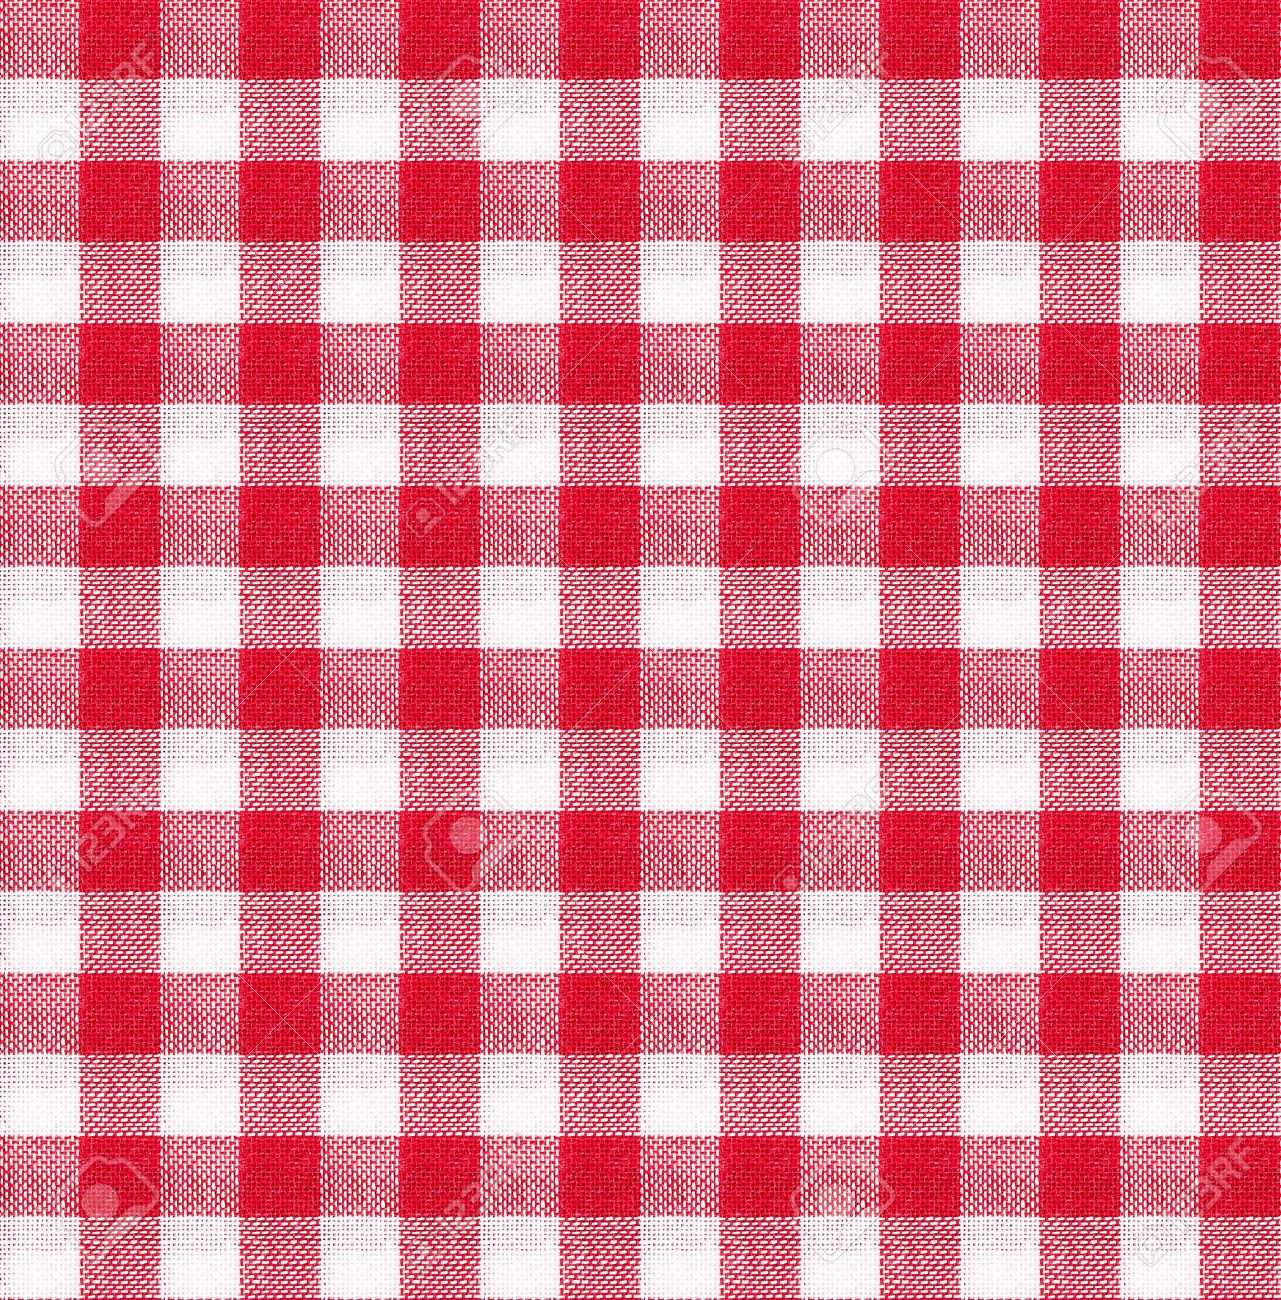 Red And White Tablecloth Wallpaper 4 | HD Wallpapers .